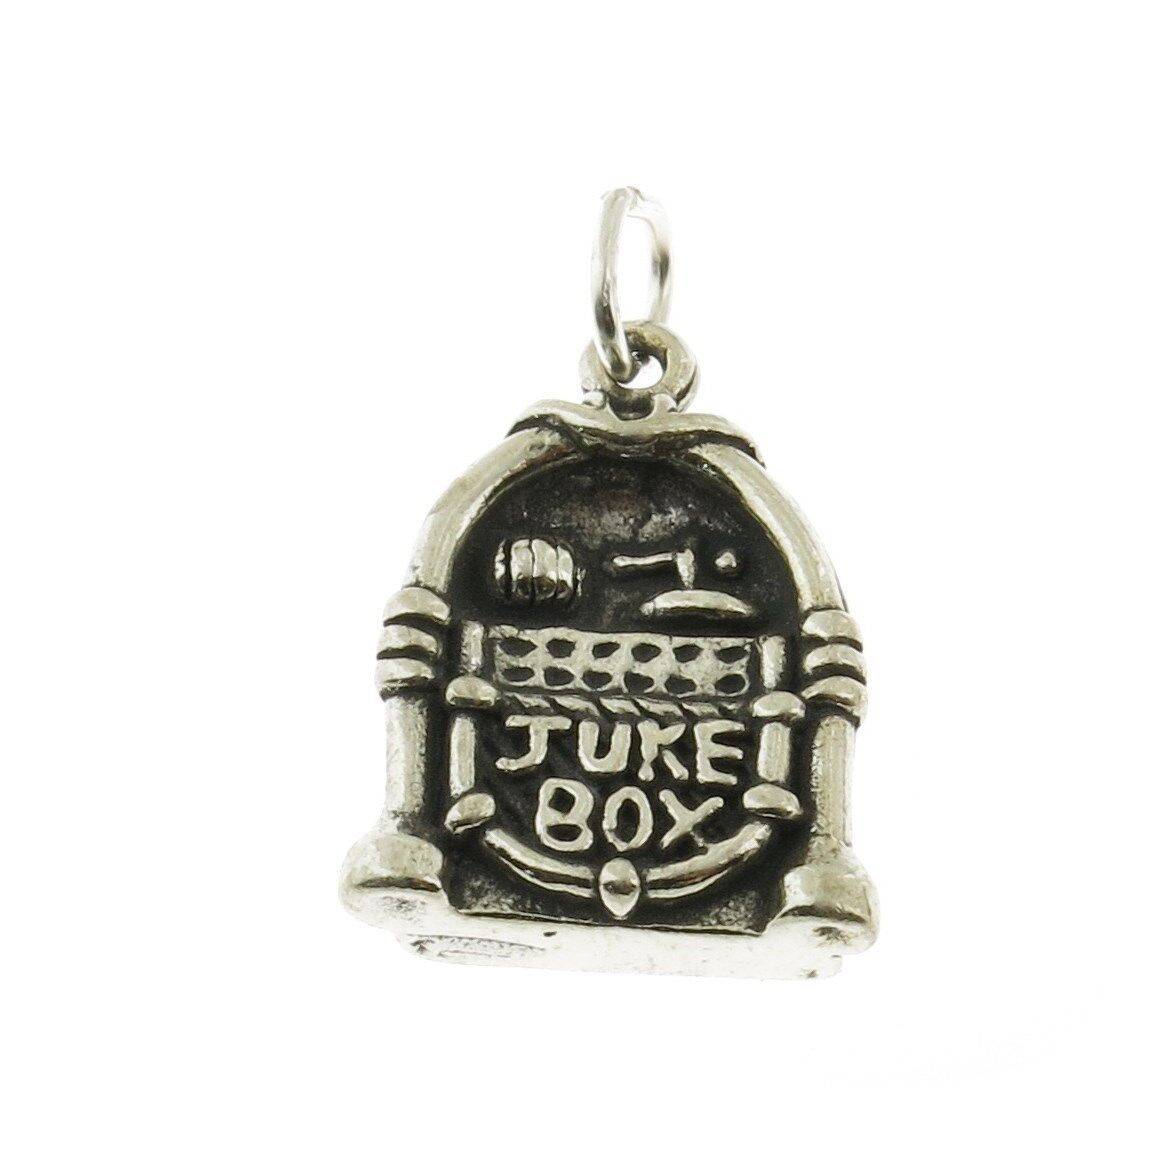 925 sterling silver jukebox charm made in